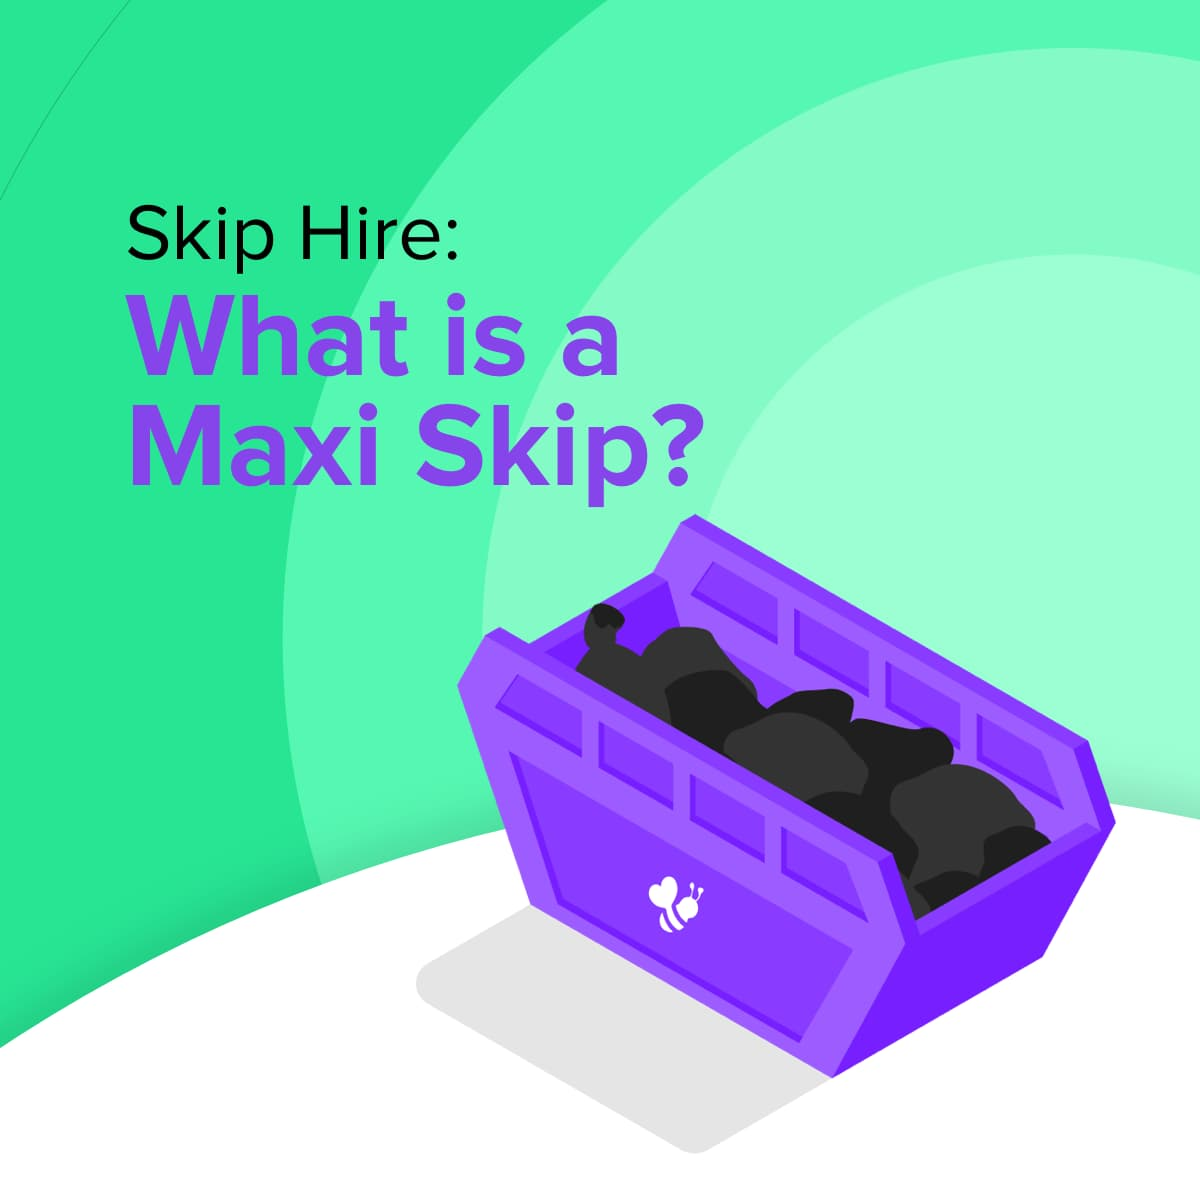 What is a Maxi Skip?